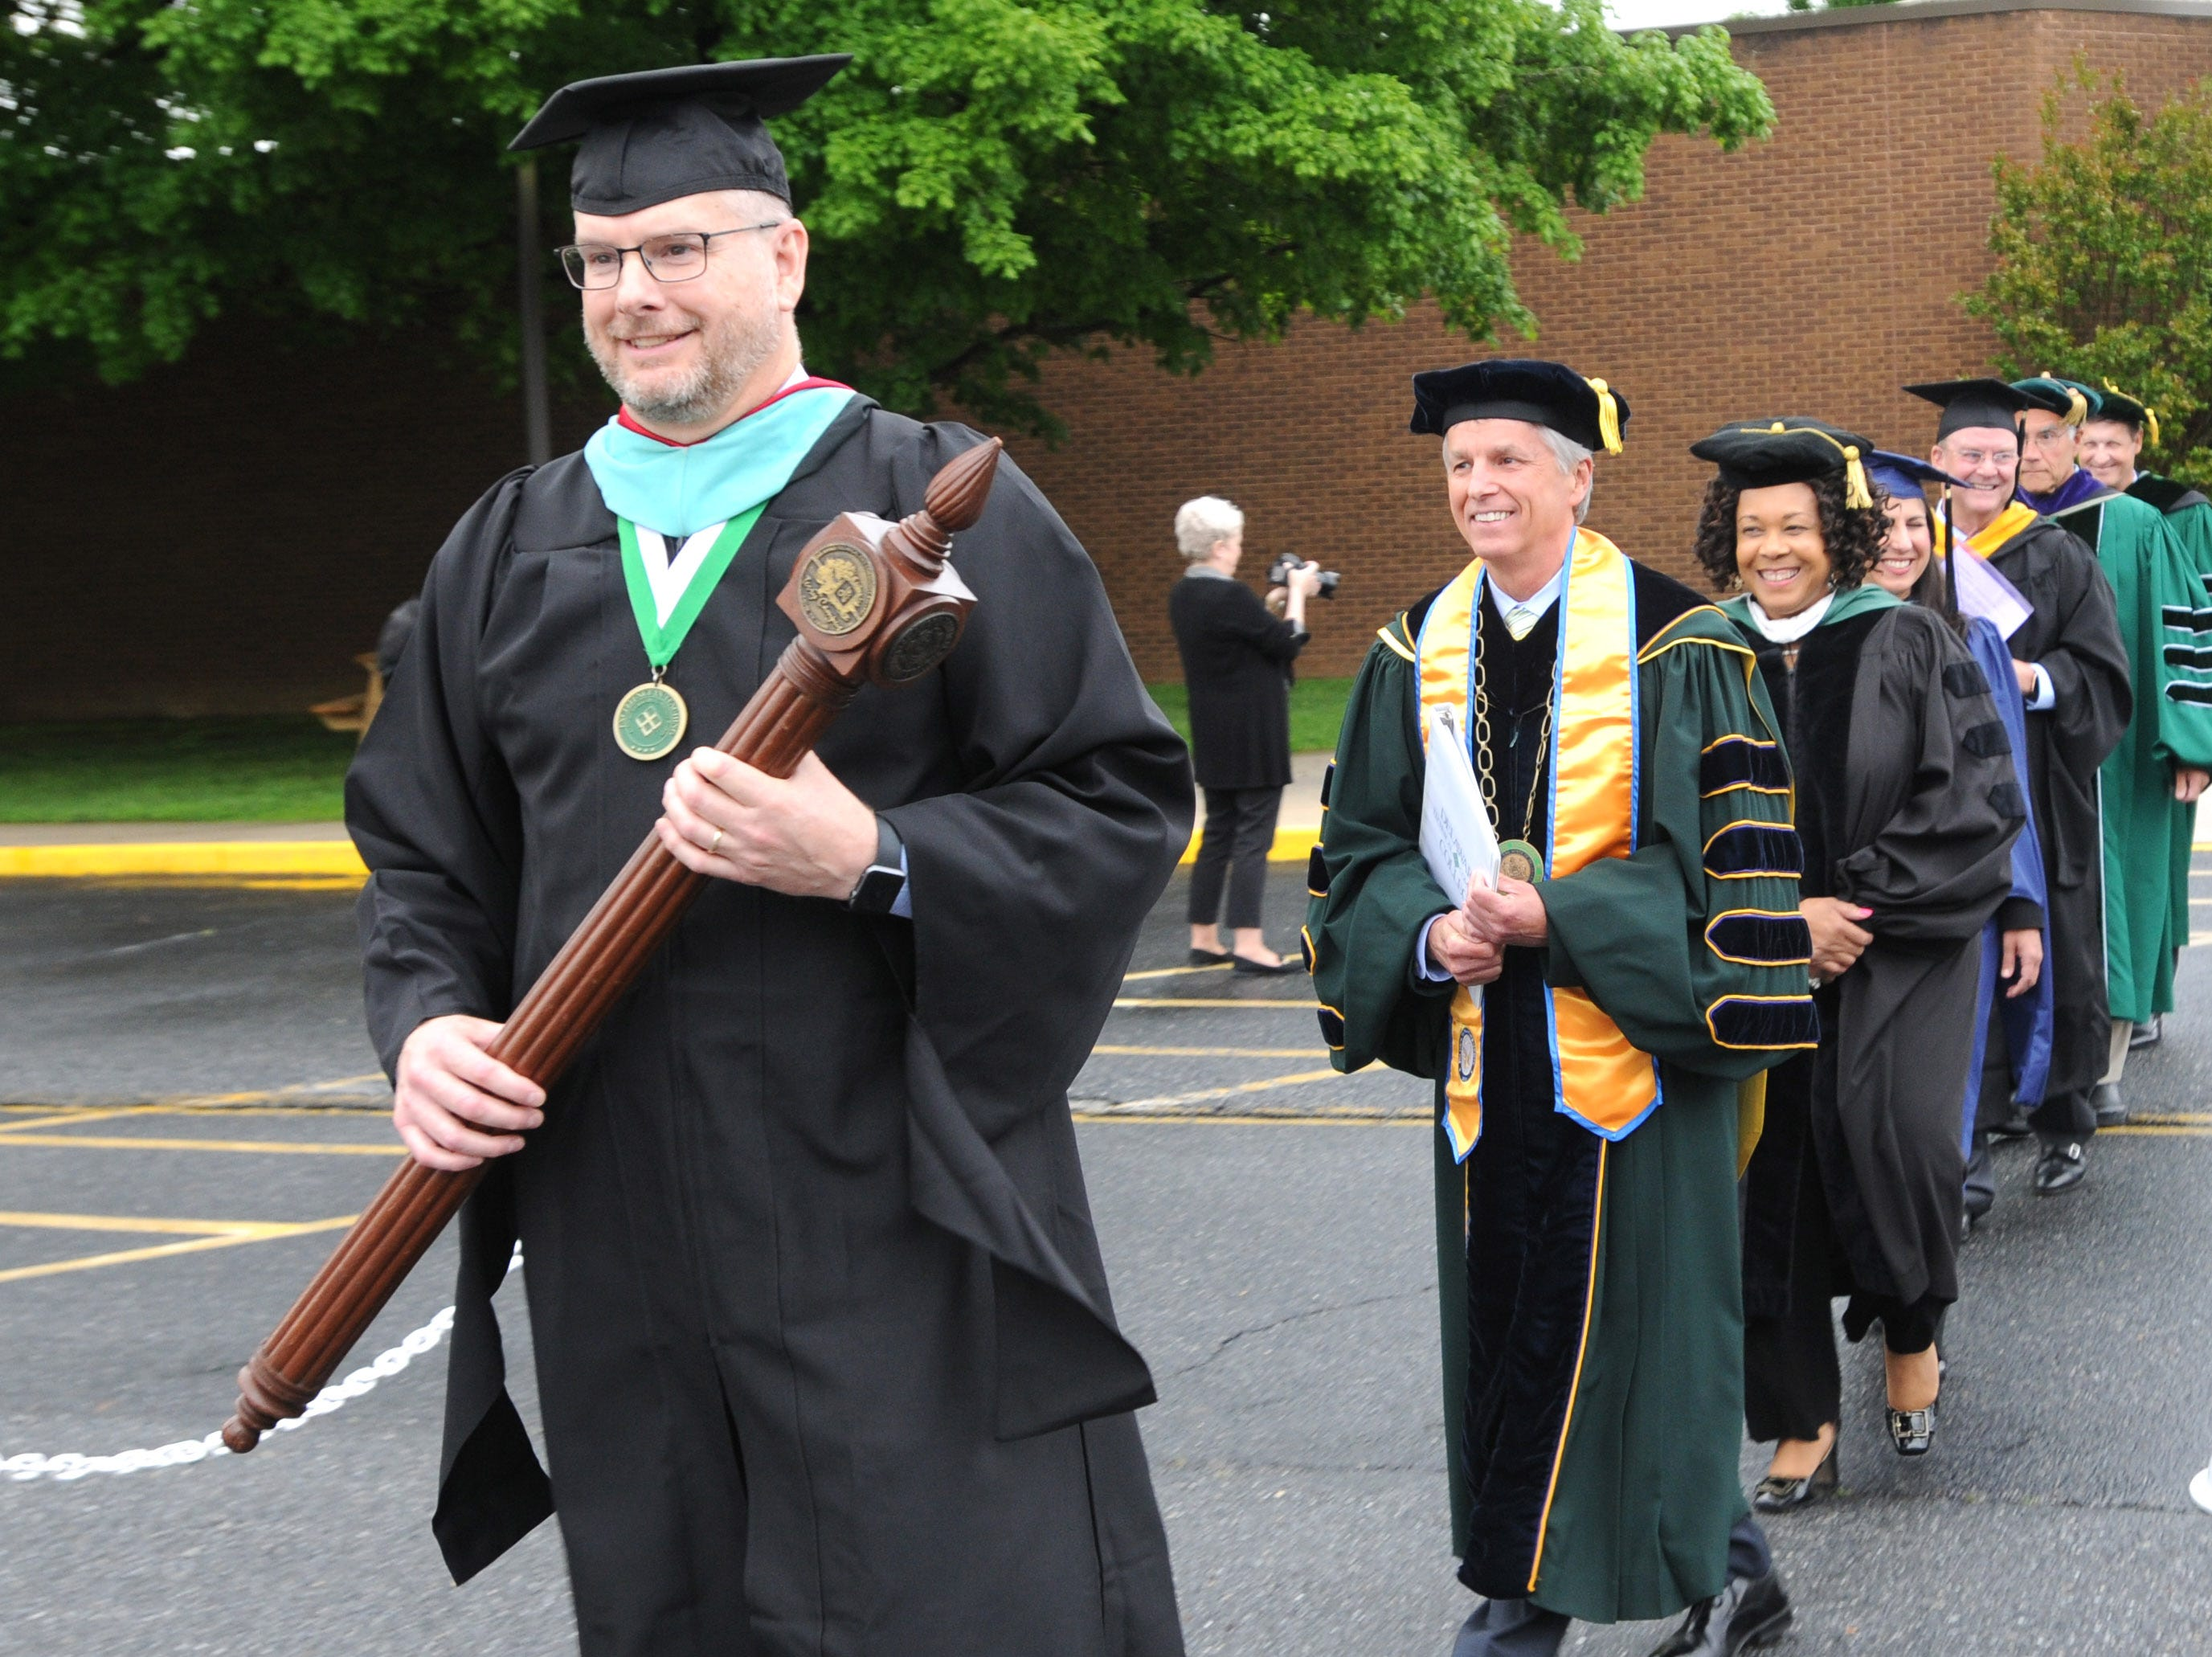 DelTech Terry Campus staff members leading the procession for Monday night's commencement exercise.